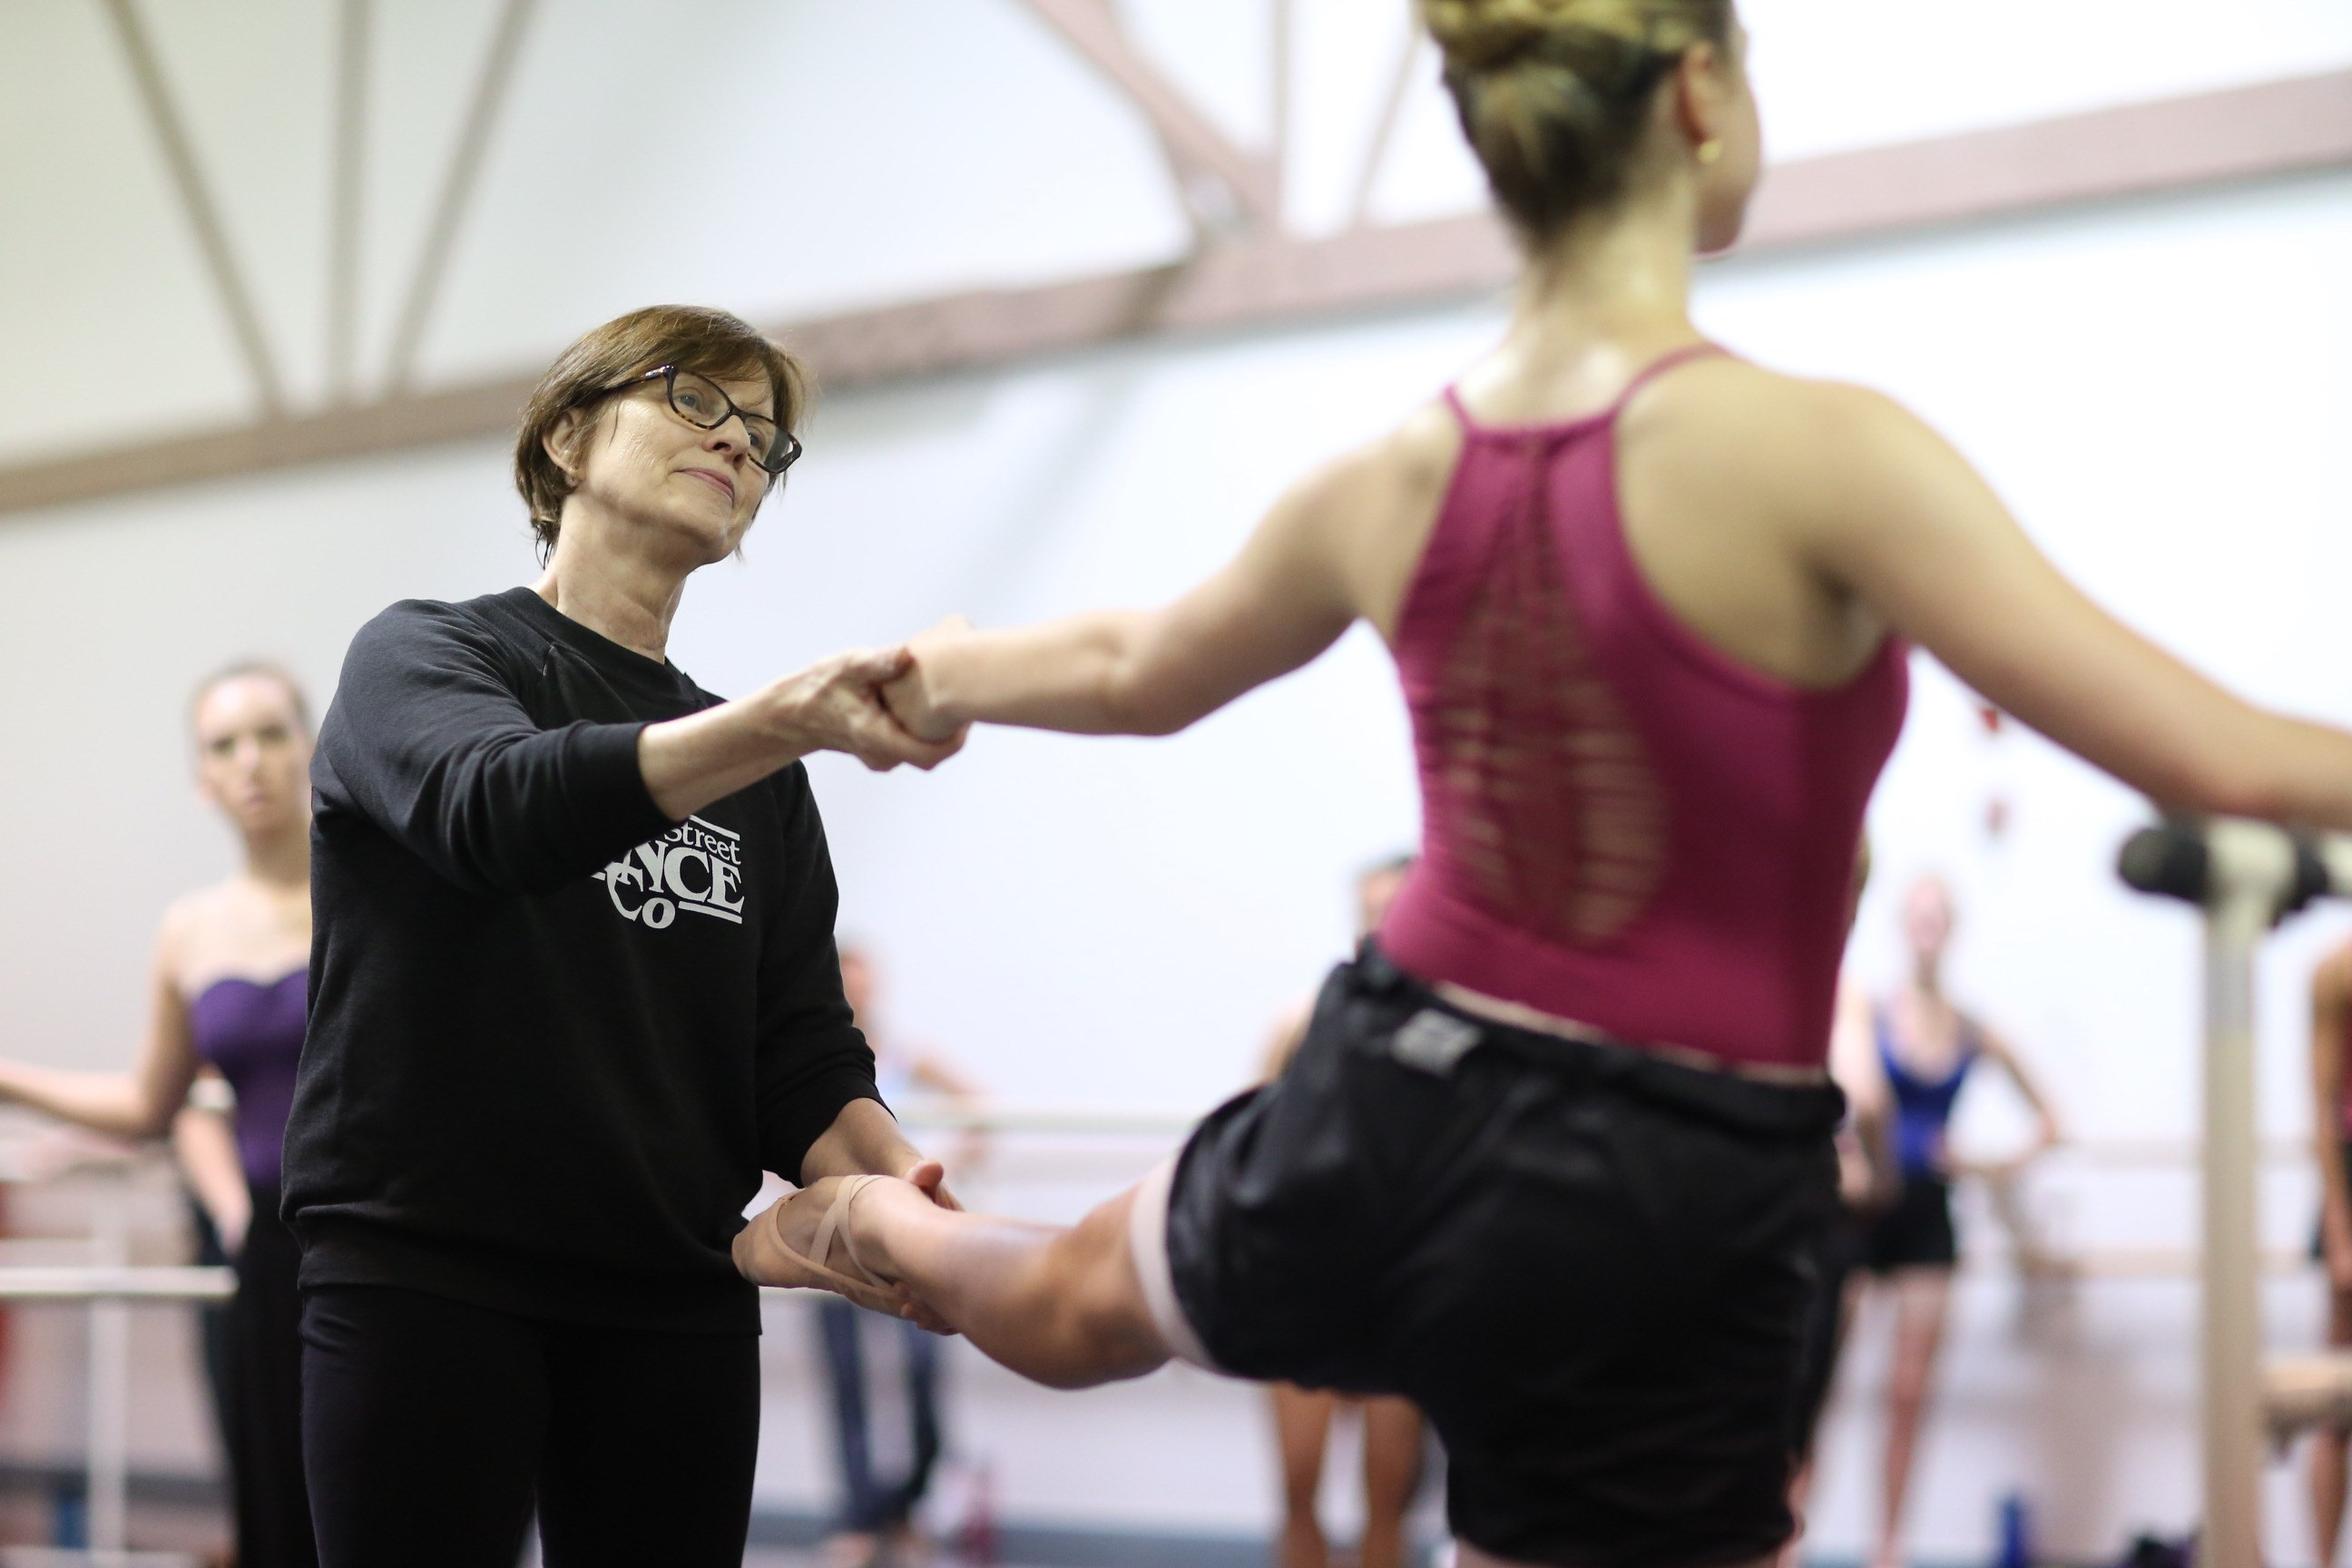 Lou Conte Dance Studio instructor Claire Bataille correcting a student's position in ballet